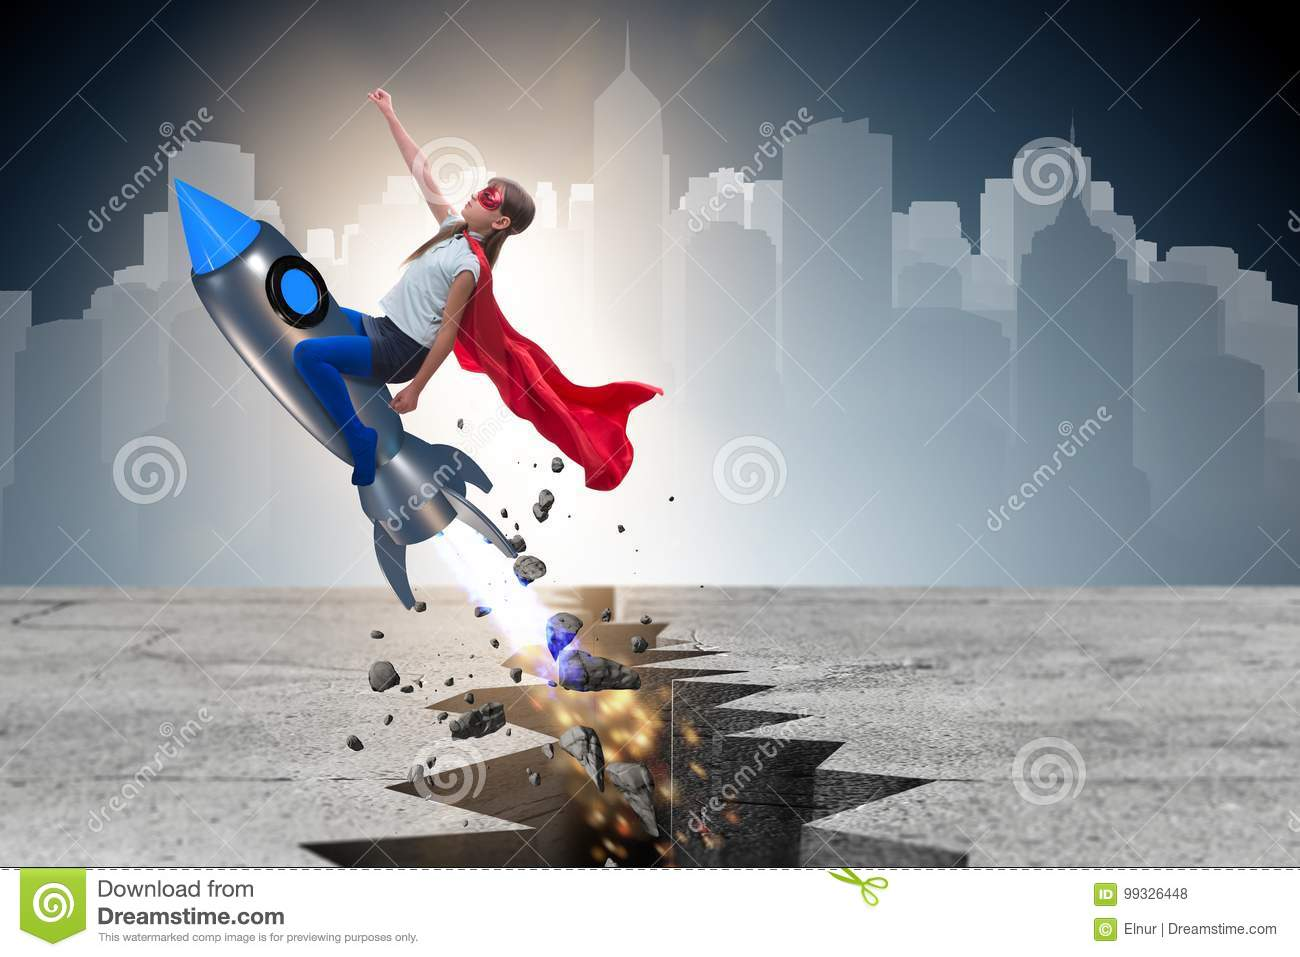 https://thumbs.dreamstime.com/z/superhero-kid-flying-rocket-99326448.jpg